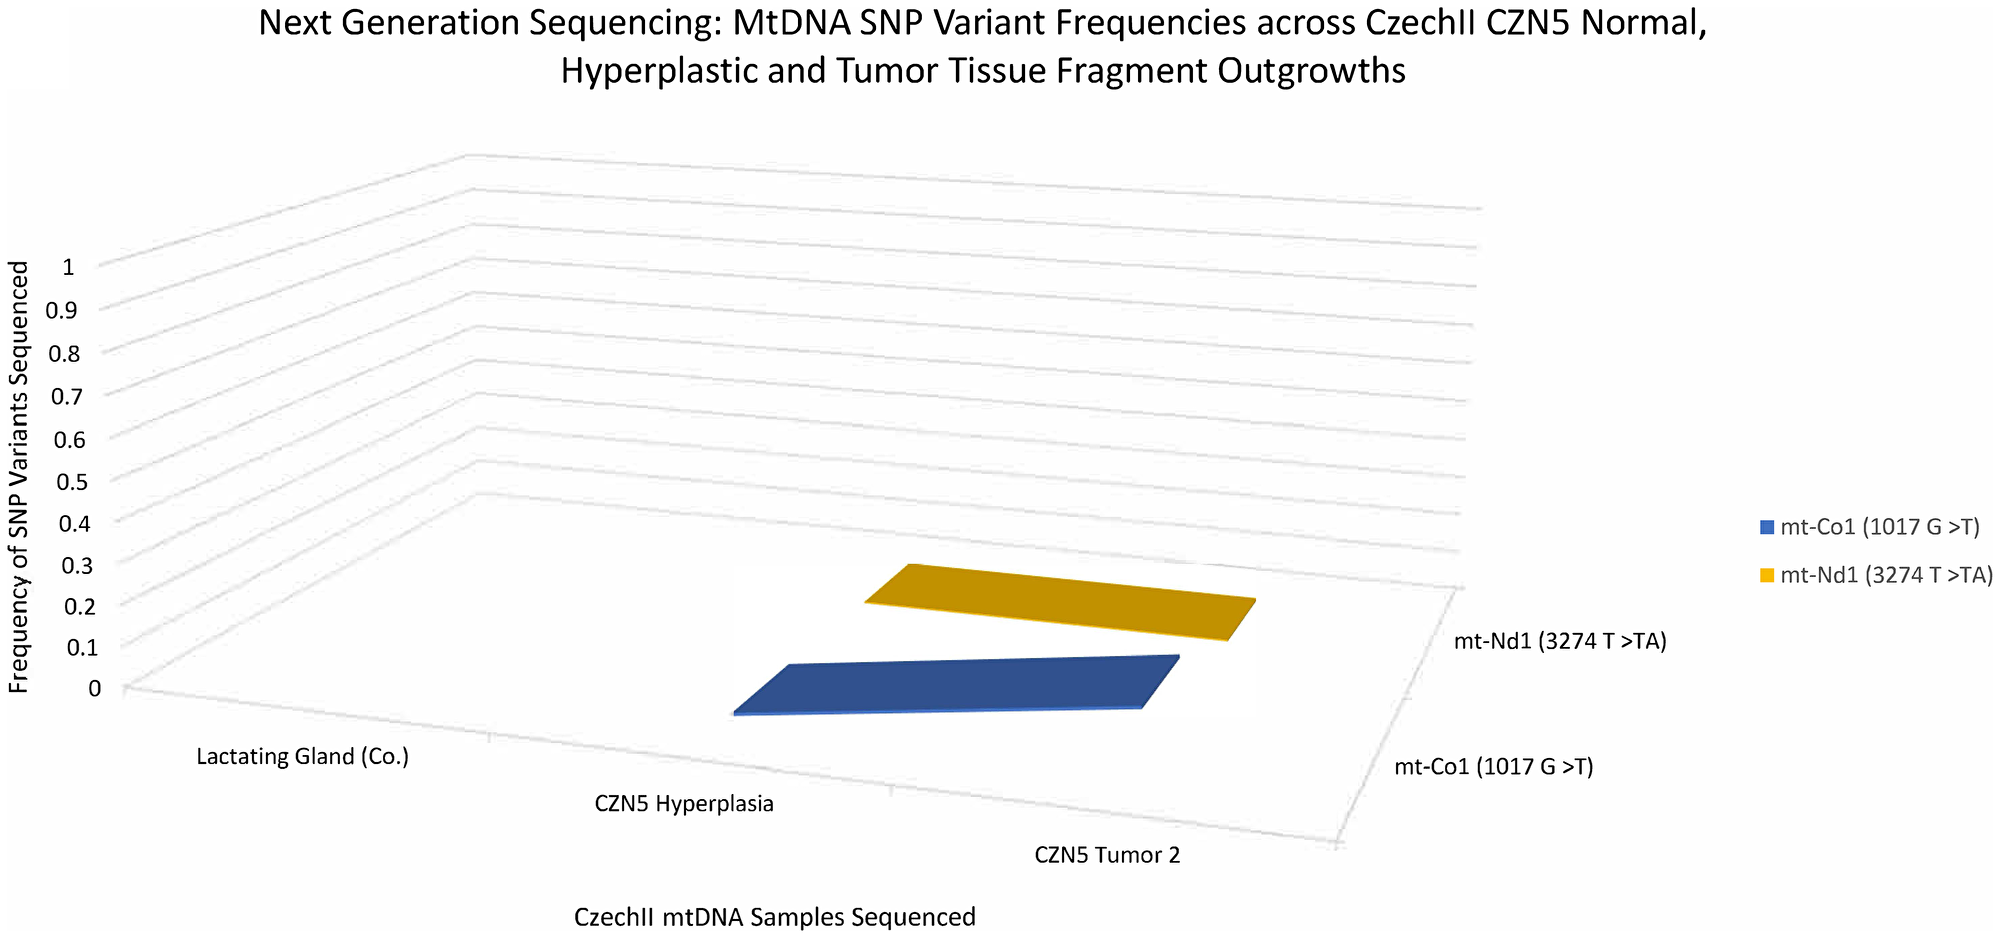 CzechII mammary CZN5 tumor 2 mtDNA SNP variant calling via Next Generation sequencing.